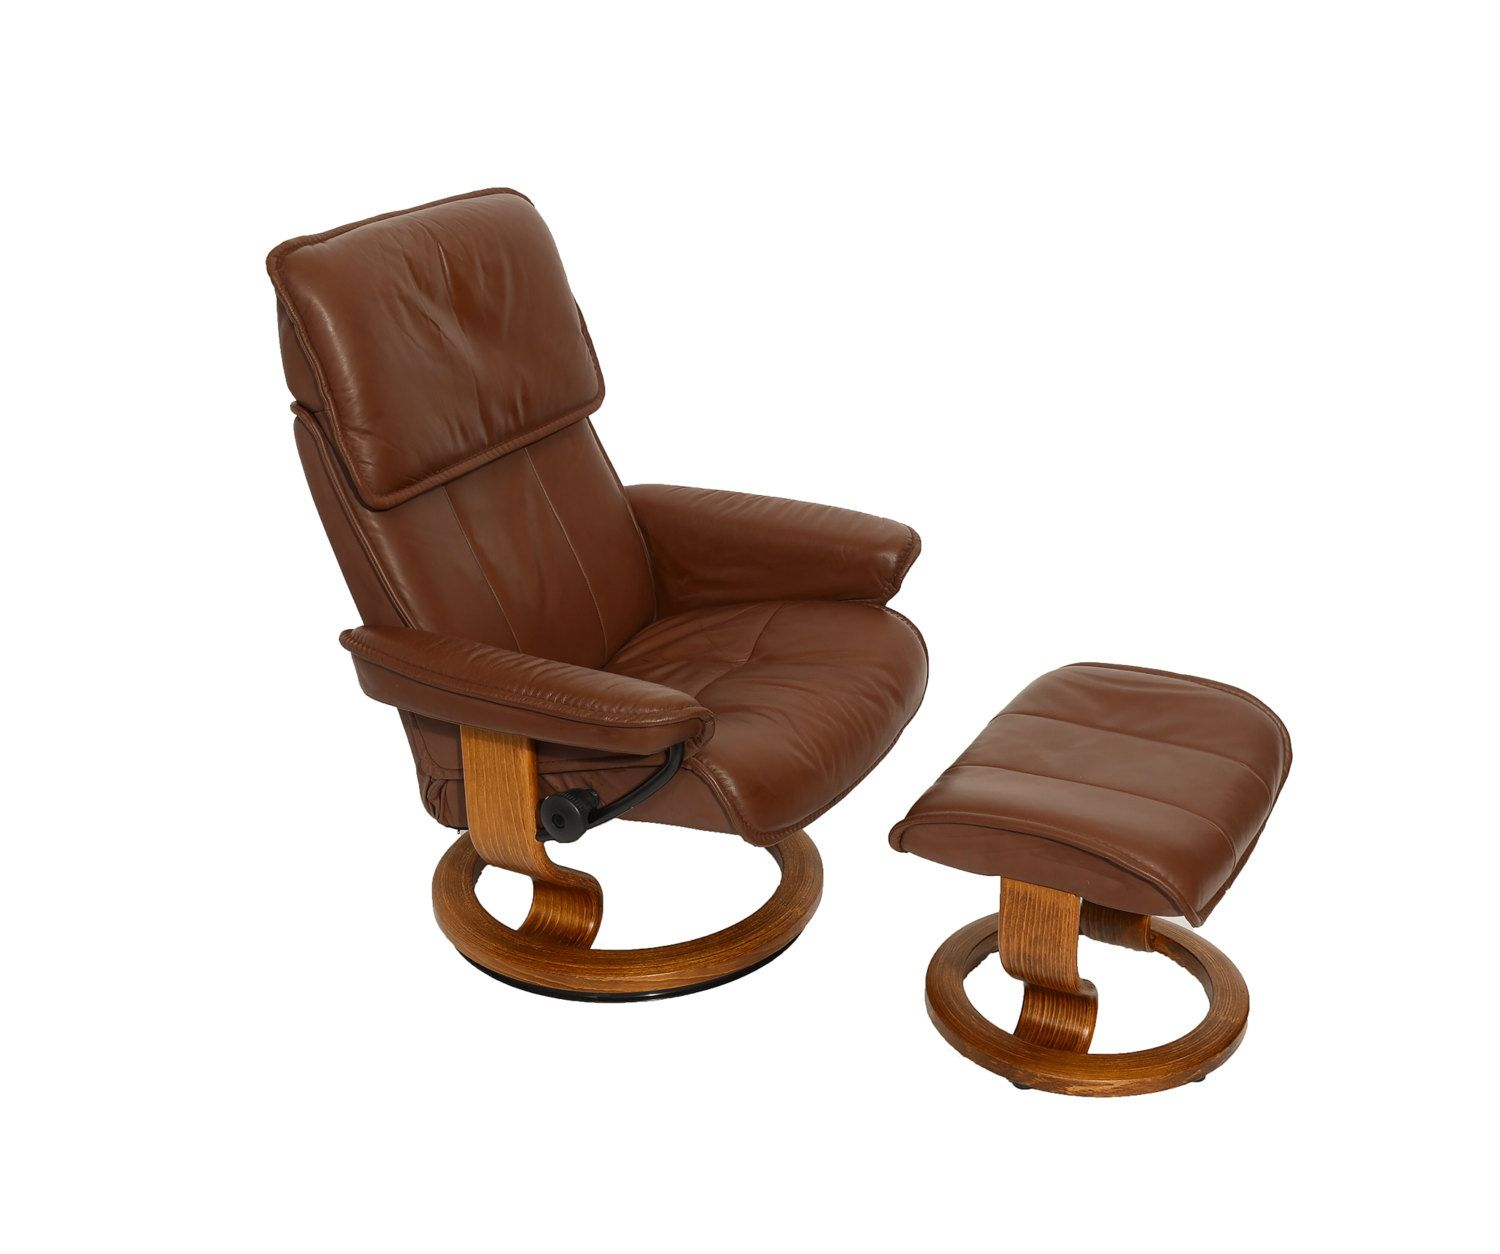 Leather Ekornes Stressless Reclining Chair & Ottoman Norway Mid Century Modern 70s by HearthsideHome on Etsy